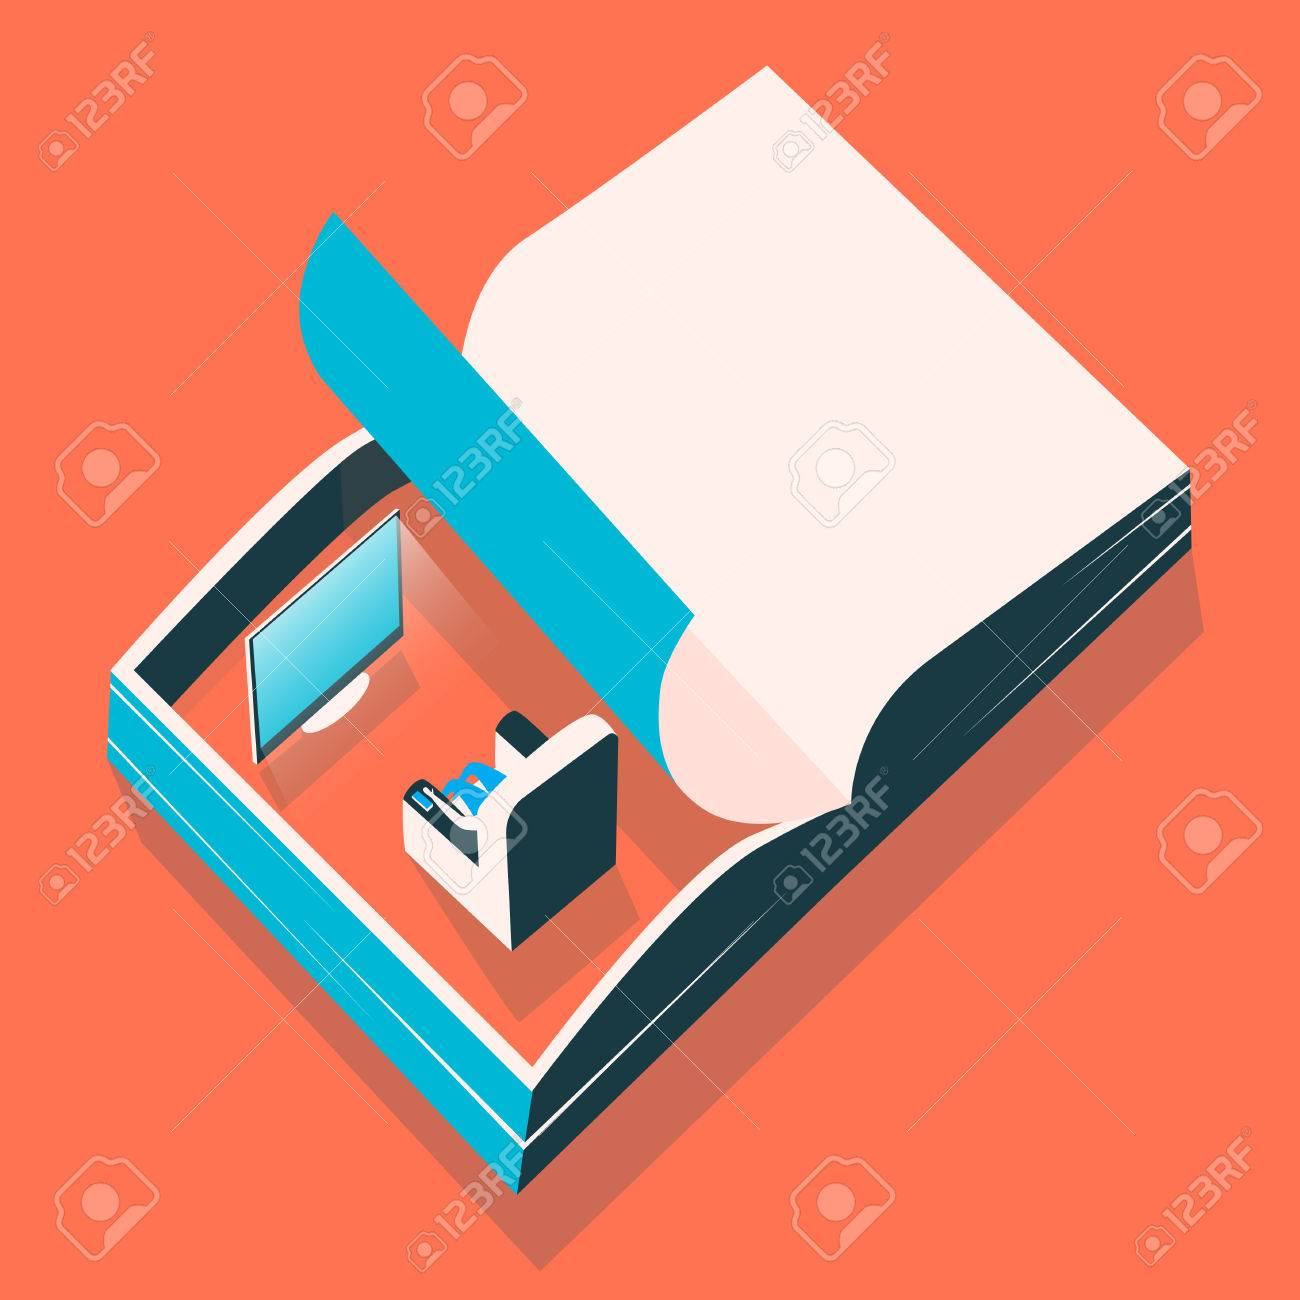 Shirt design book - Open Book Everyday Page Poster And T Shirt Design Stock Vector